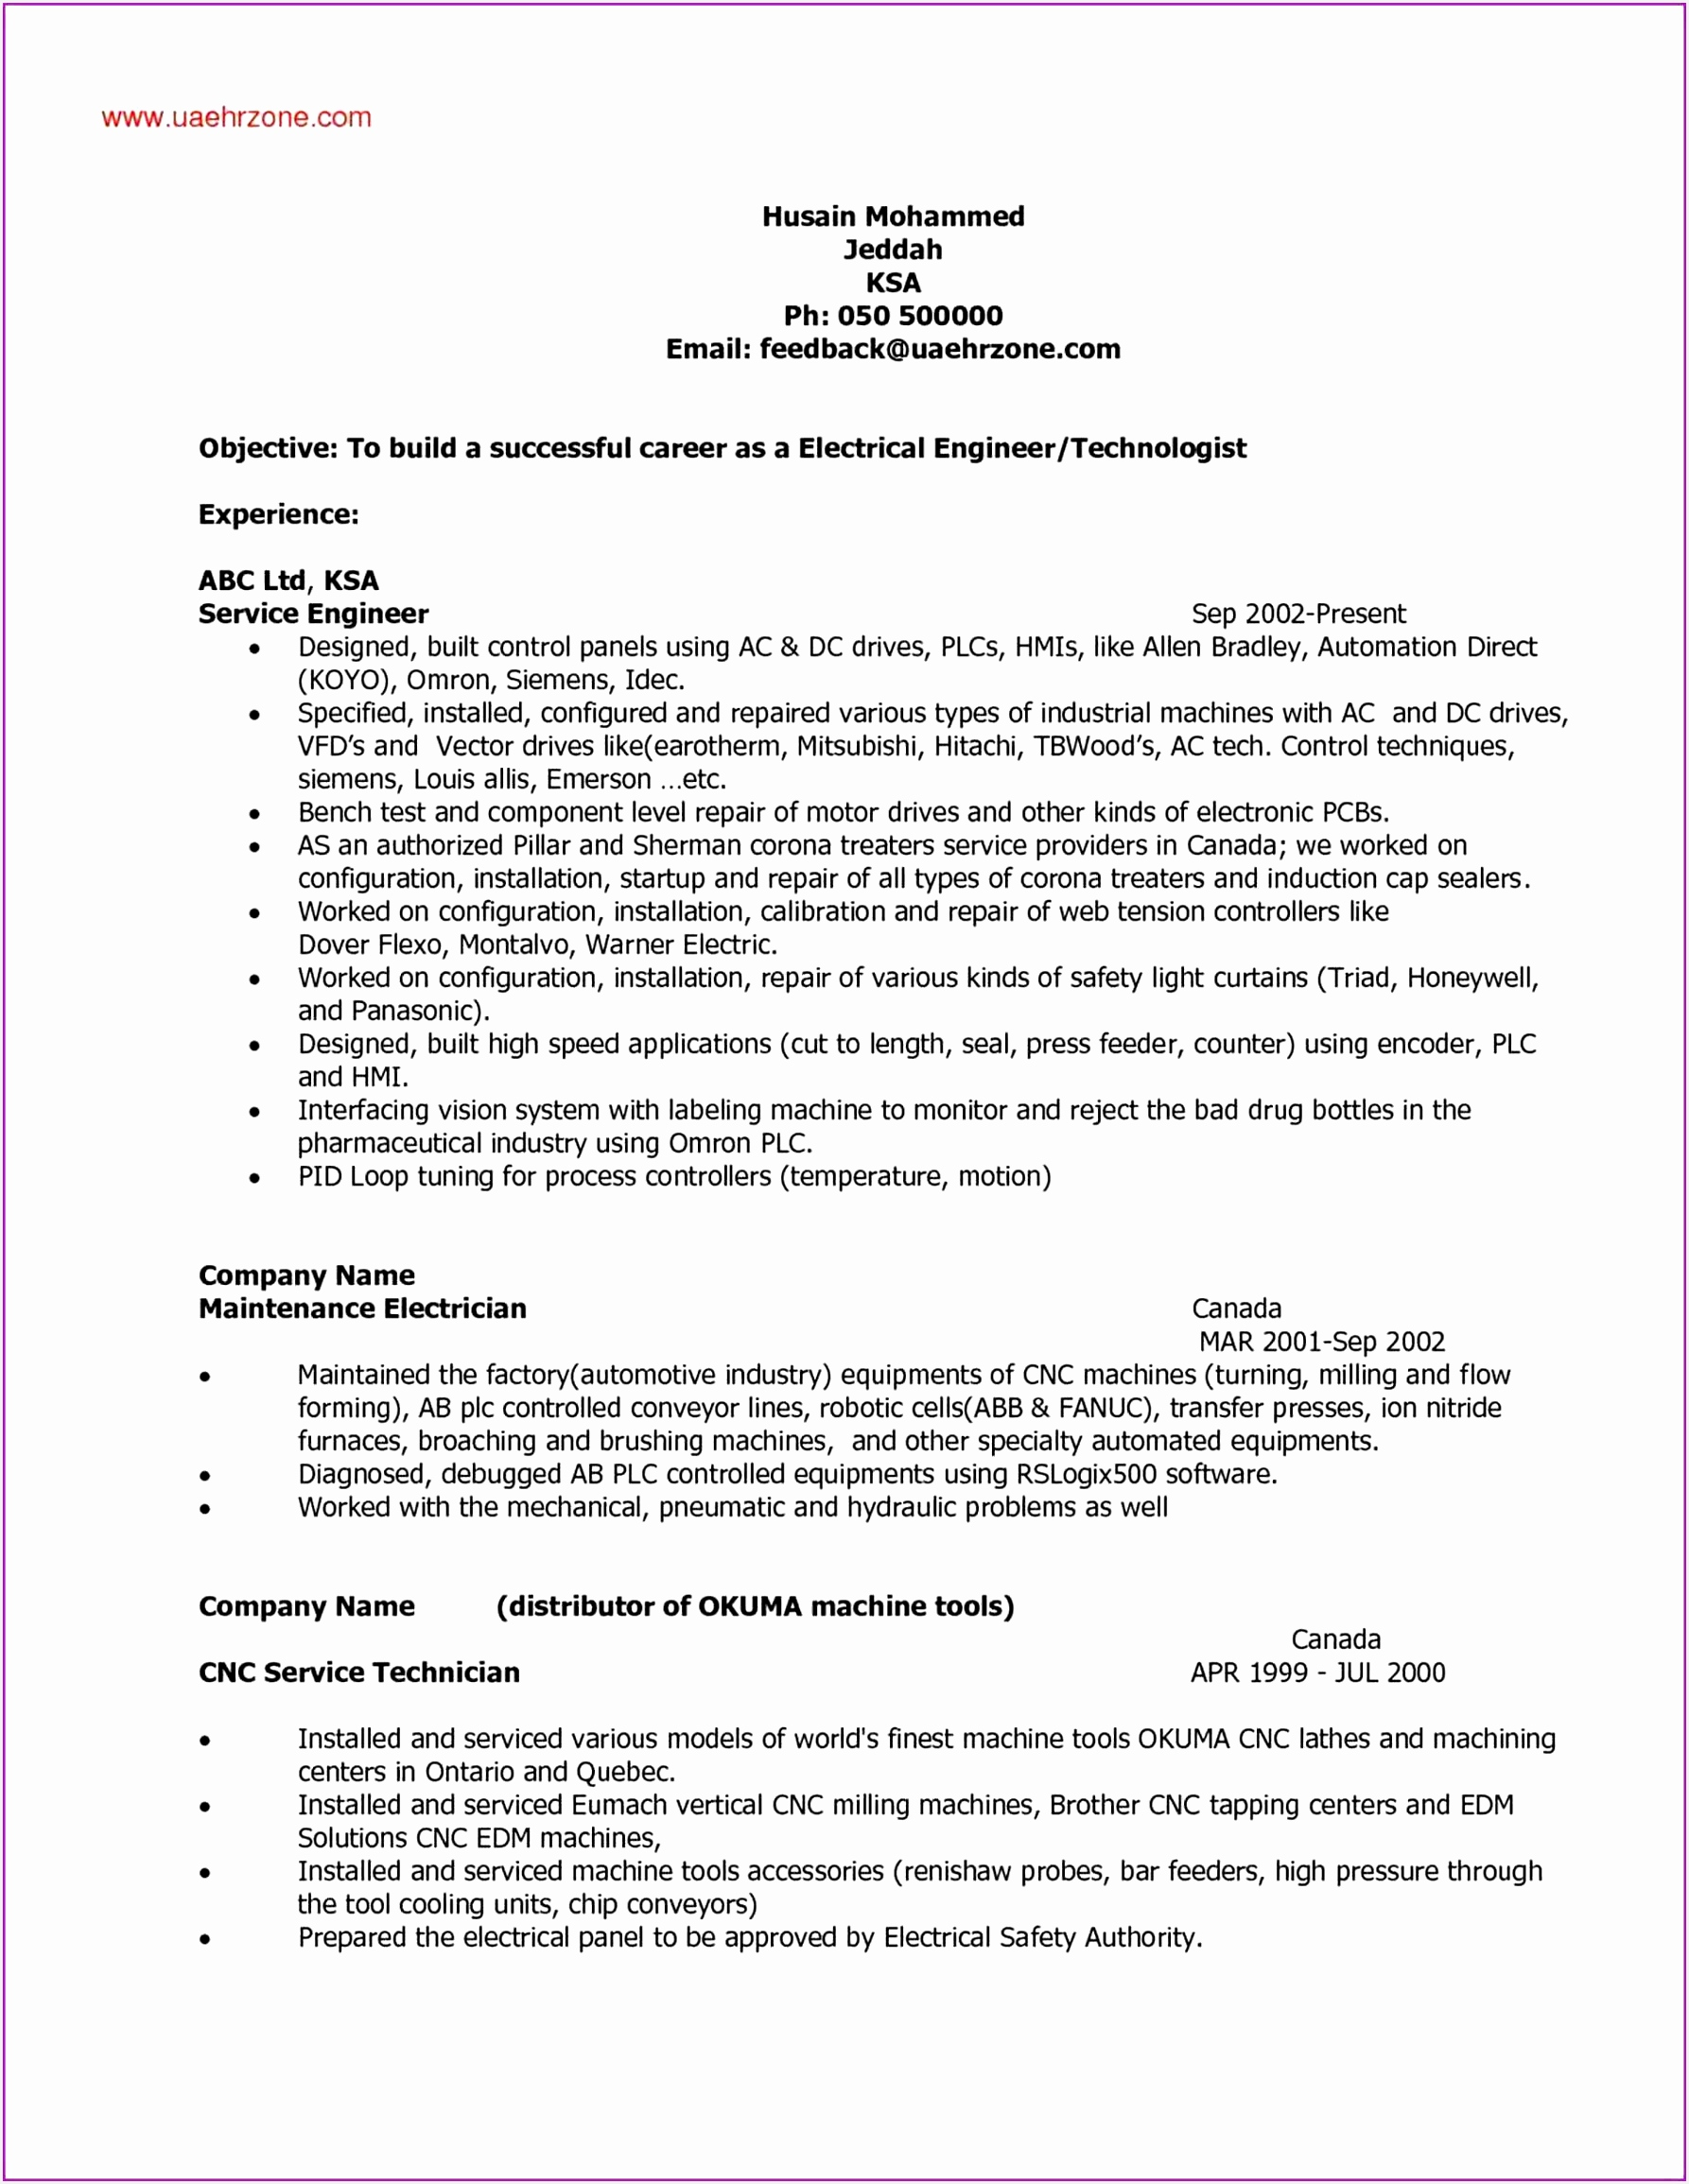 Contract Stress Engineer Sample Resume Baadl Best Of Mechanical Sample Resume Luxury Luxury How to Write A Proper Resume Of Contract Stress Engineer Sample Resume Nwweq Best Of Student Resume Template Beautiful Best Pr Resume Template Elegant